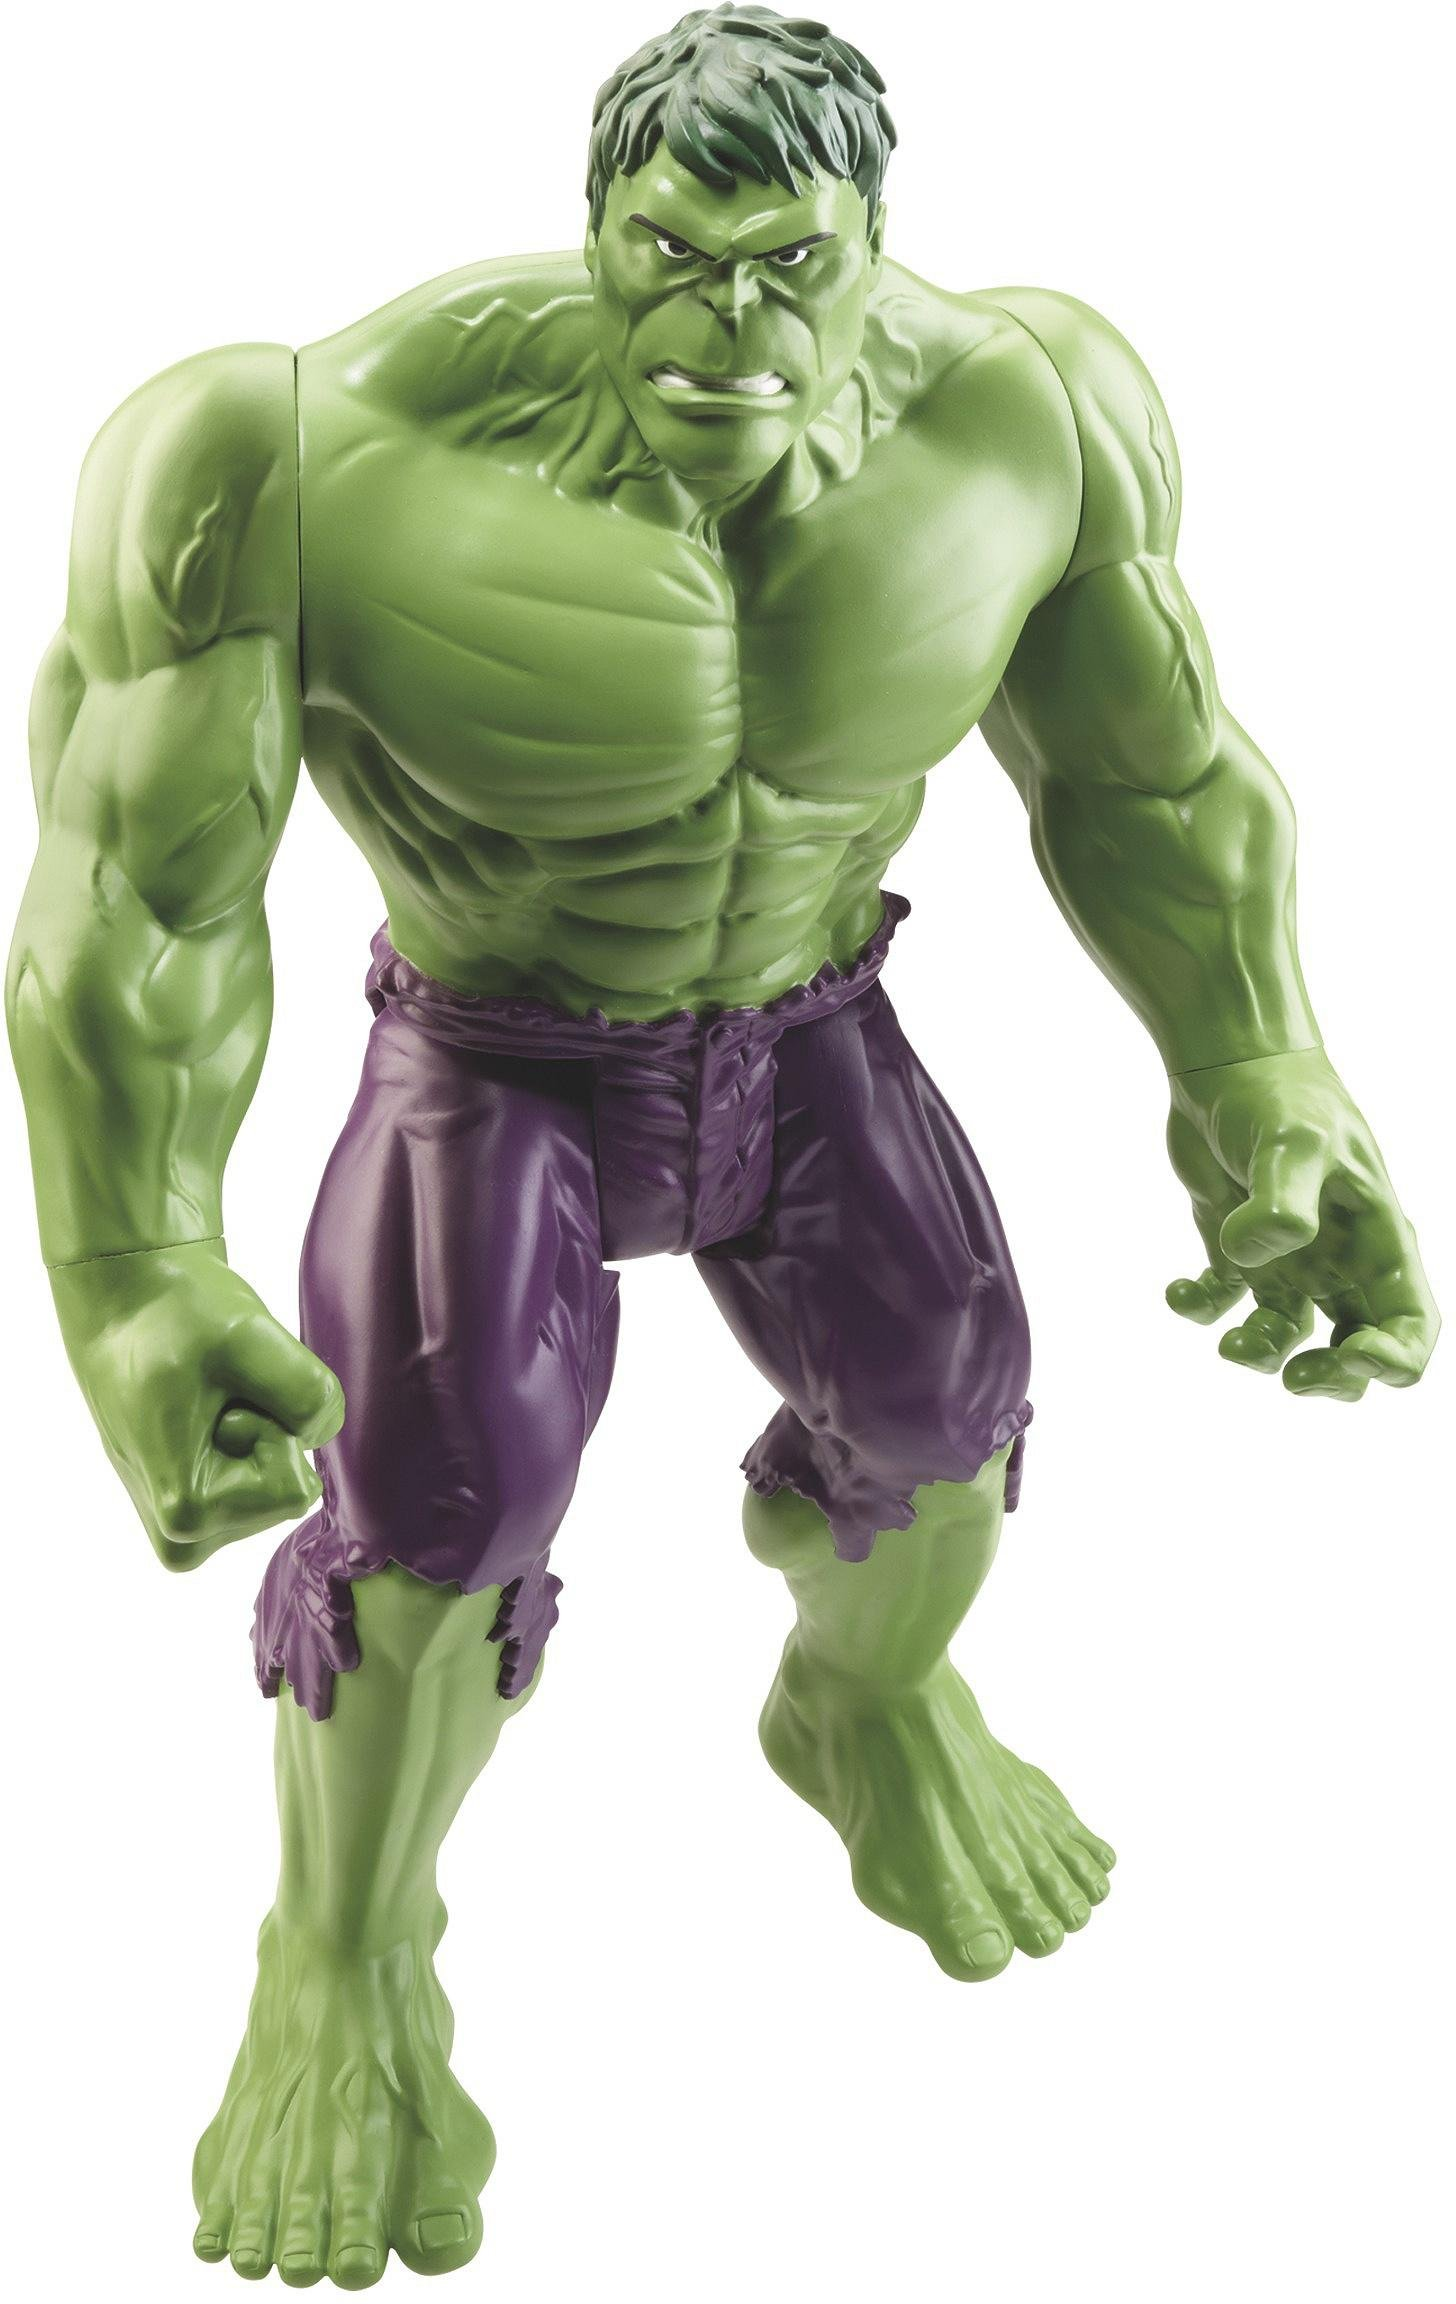 Image of Avengers Titan Hero Series Action Figure Hulk